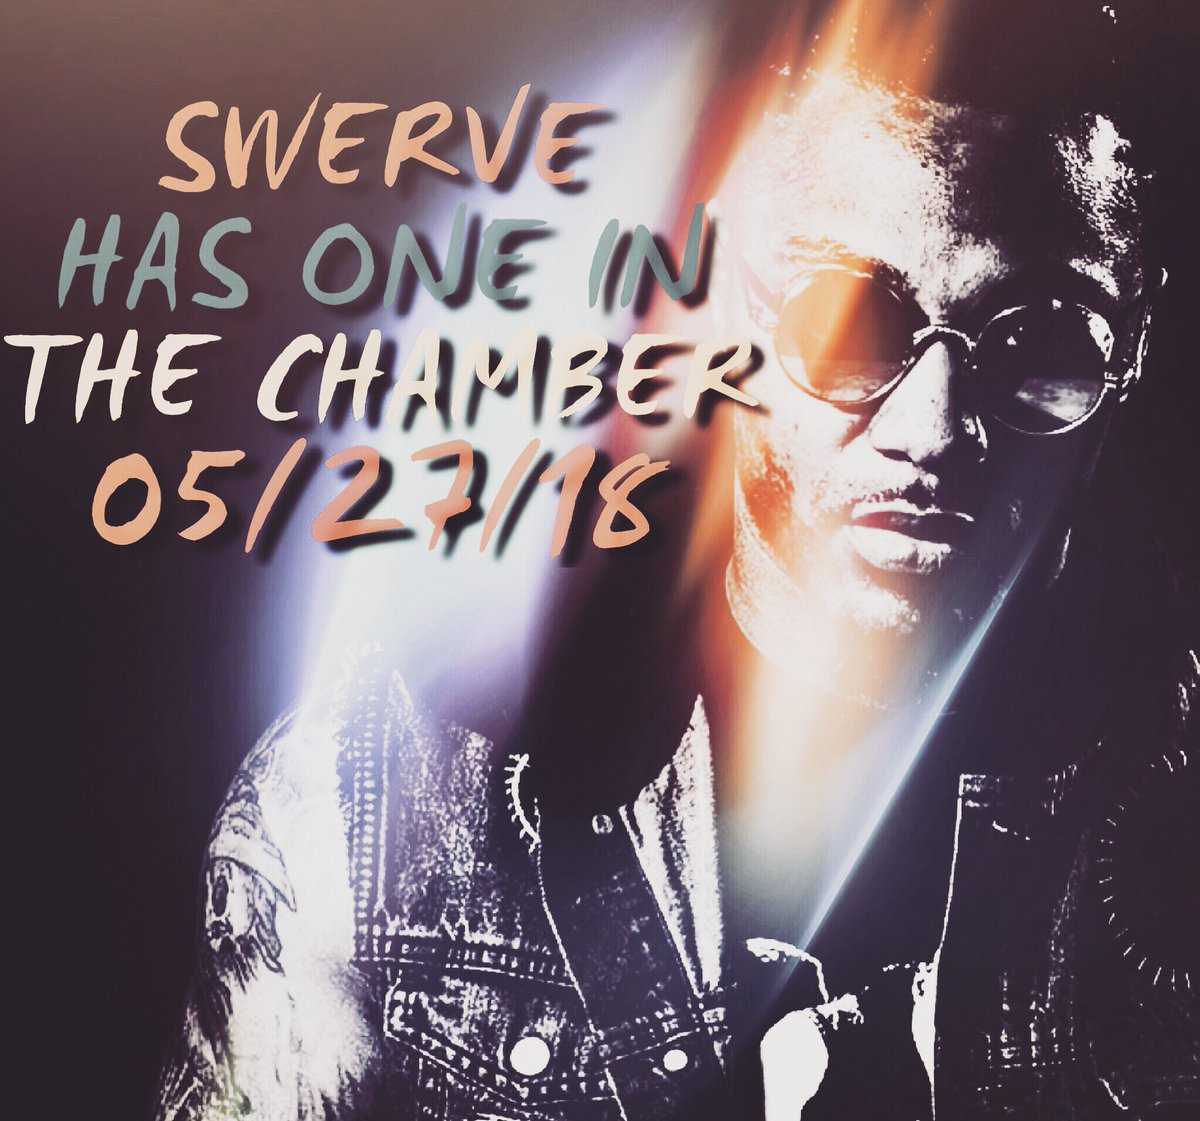 Who better than #SWERVE for May 27th #ONEinTheChamber #IPW #wrestling #NJ #Ridgefield @StricklandShane is going to do what he does best and excite the crowd. Question is #whowillstepup <br>http://pic.twitter.com/rKxRKXFHep